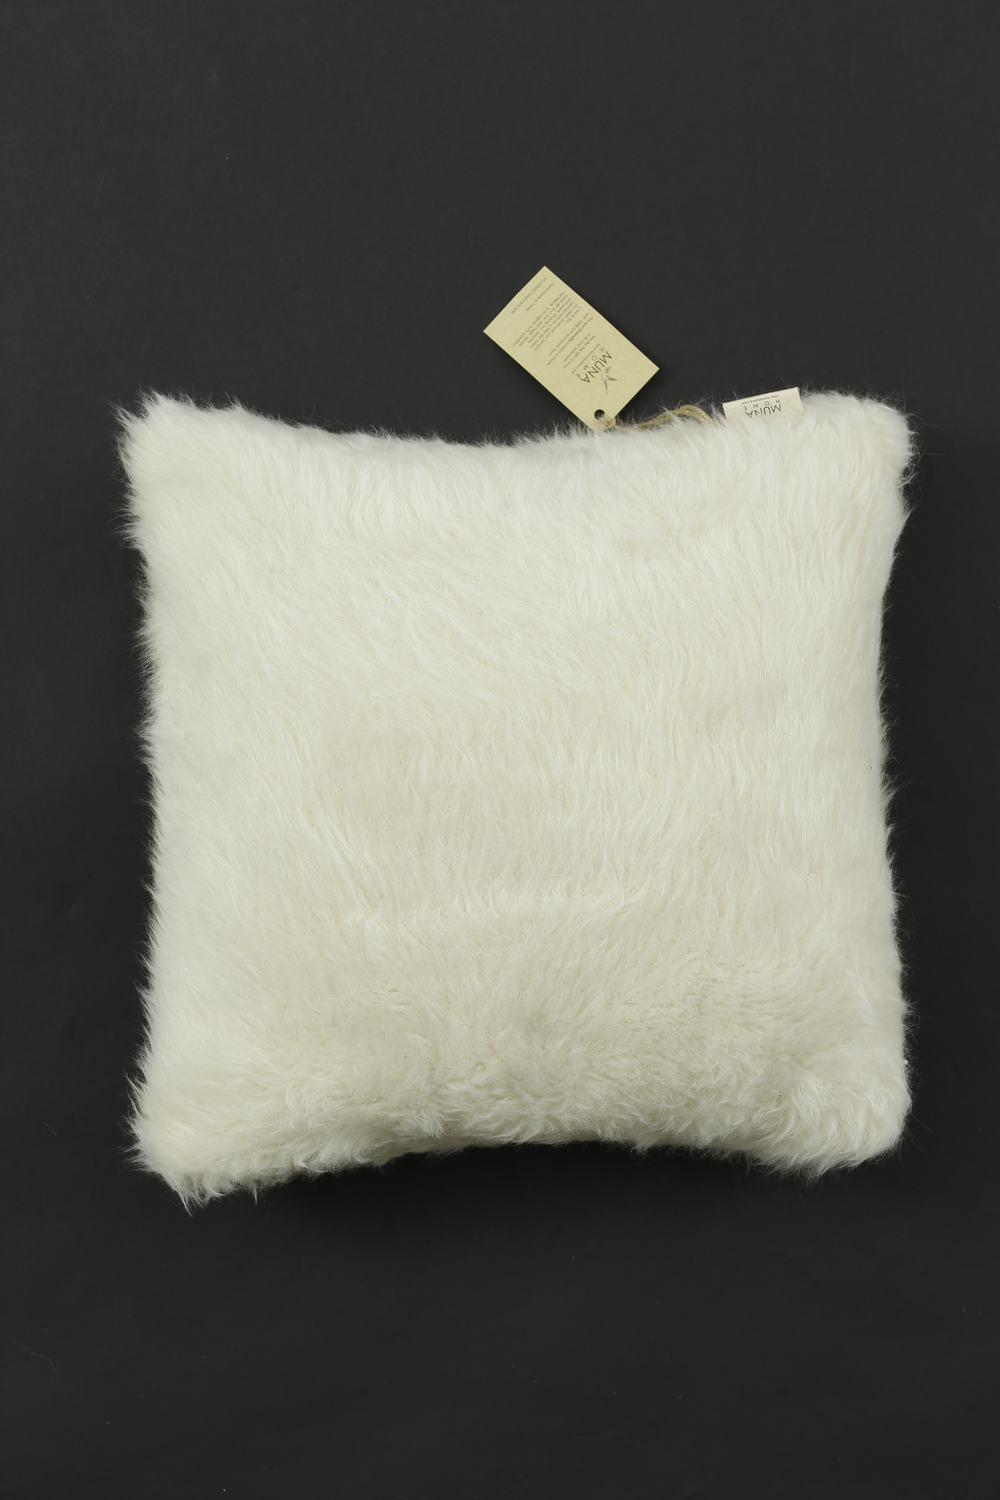 - White Cushion - 40x40 cm - 15,7x15,7 Inch